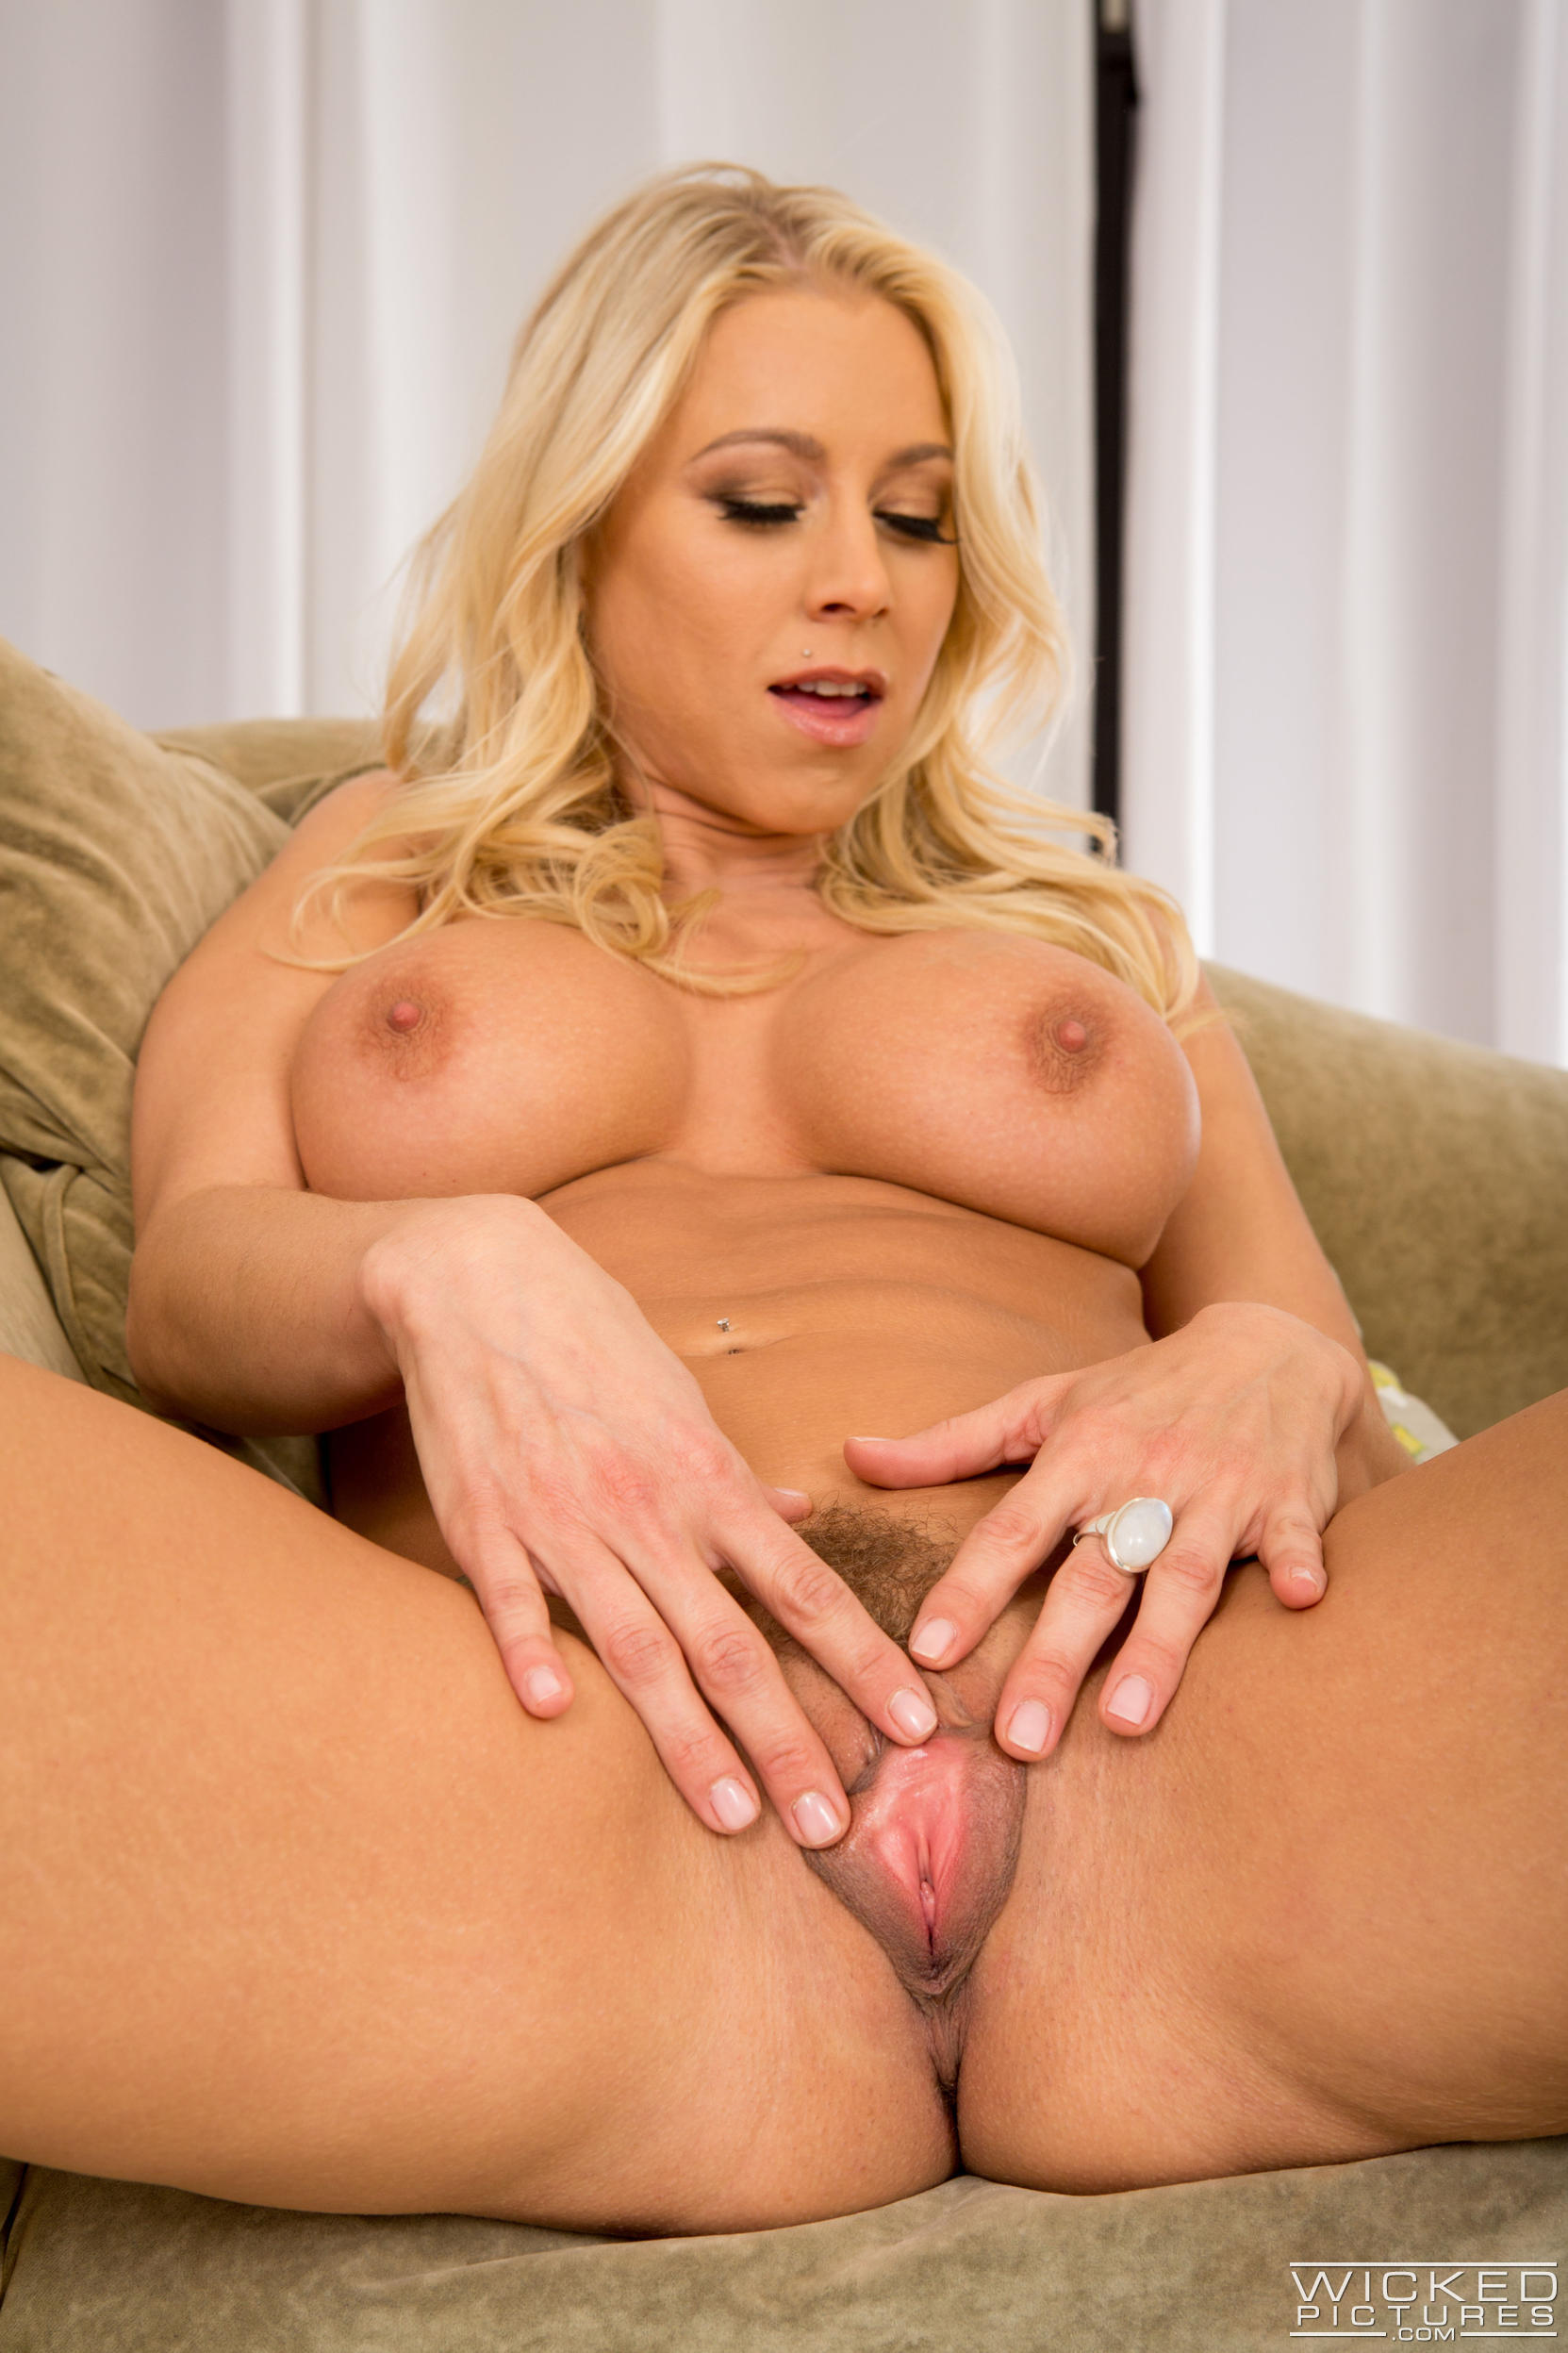 Katie morgan nude movie scene